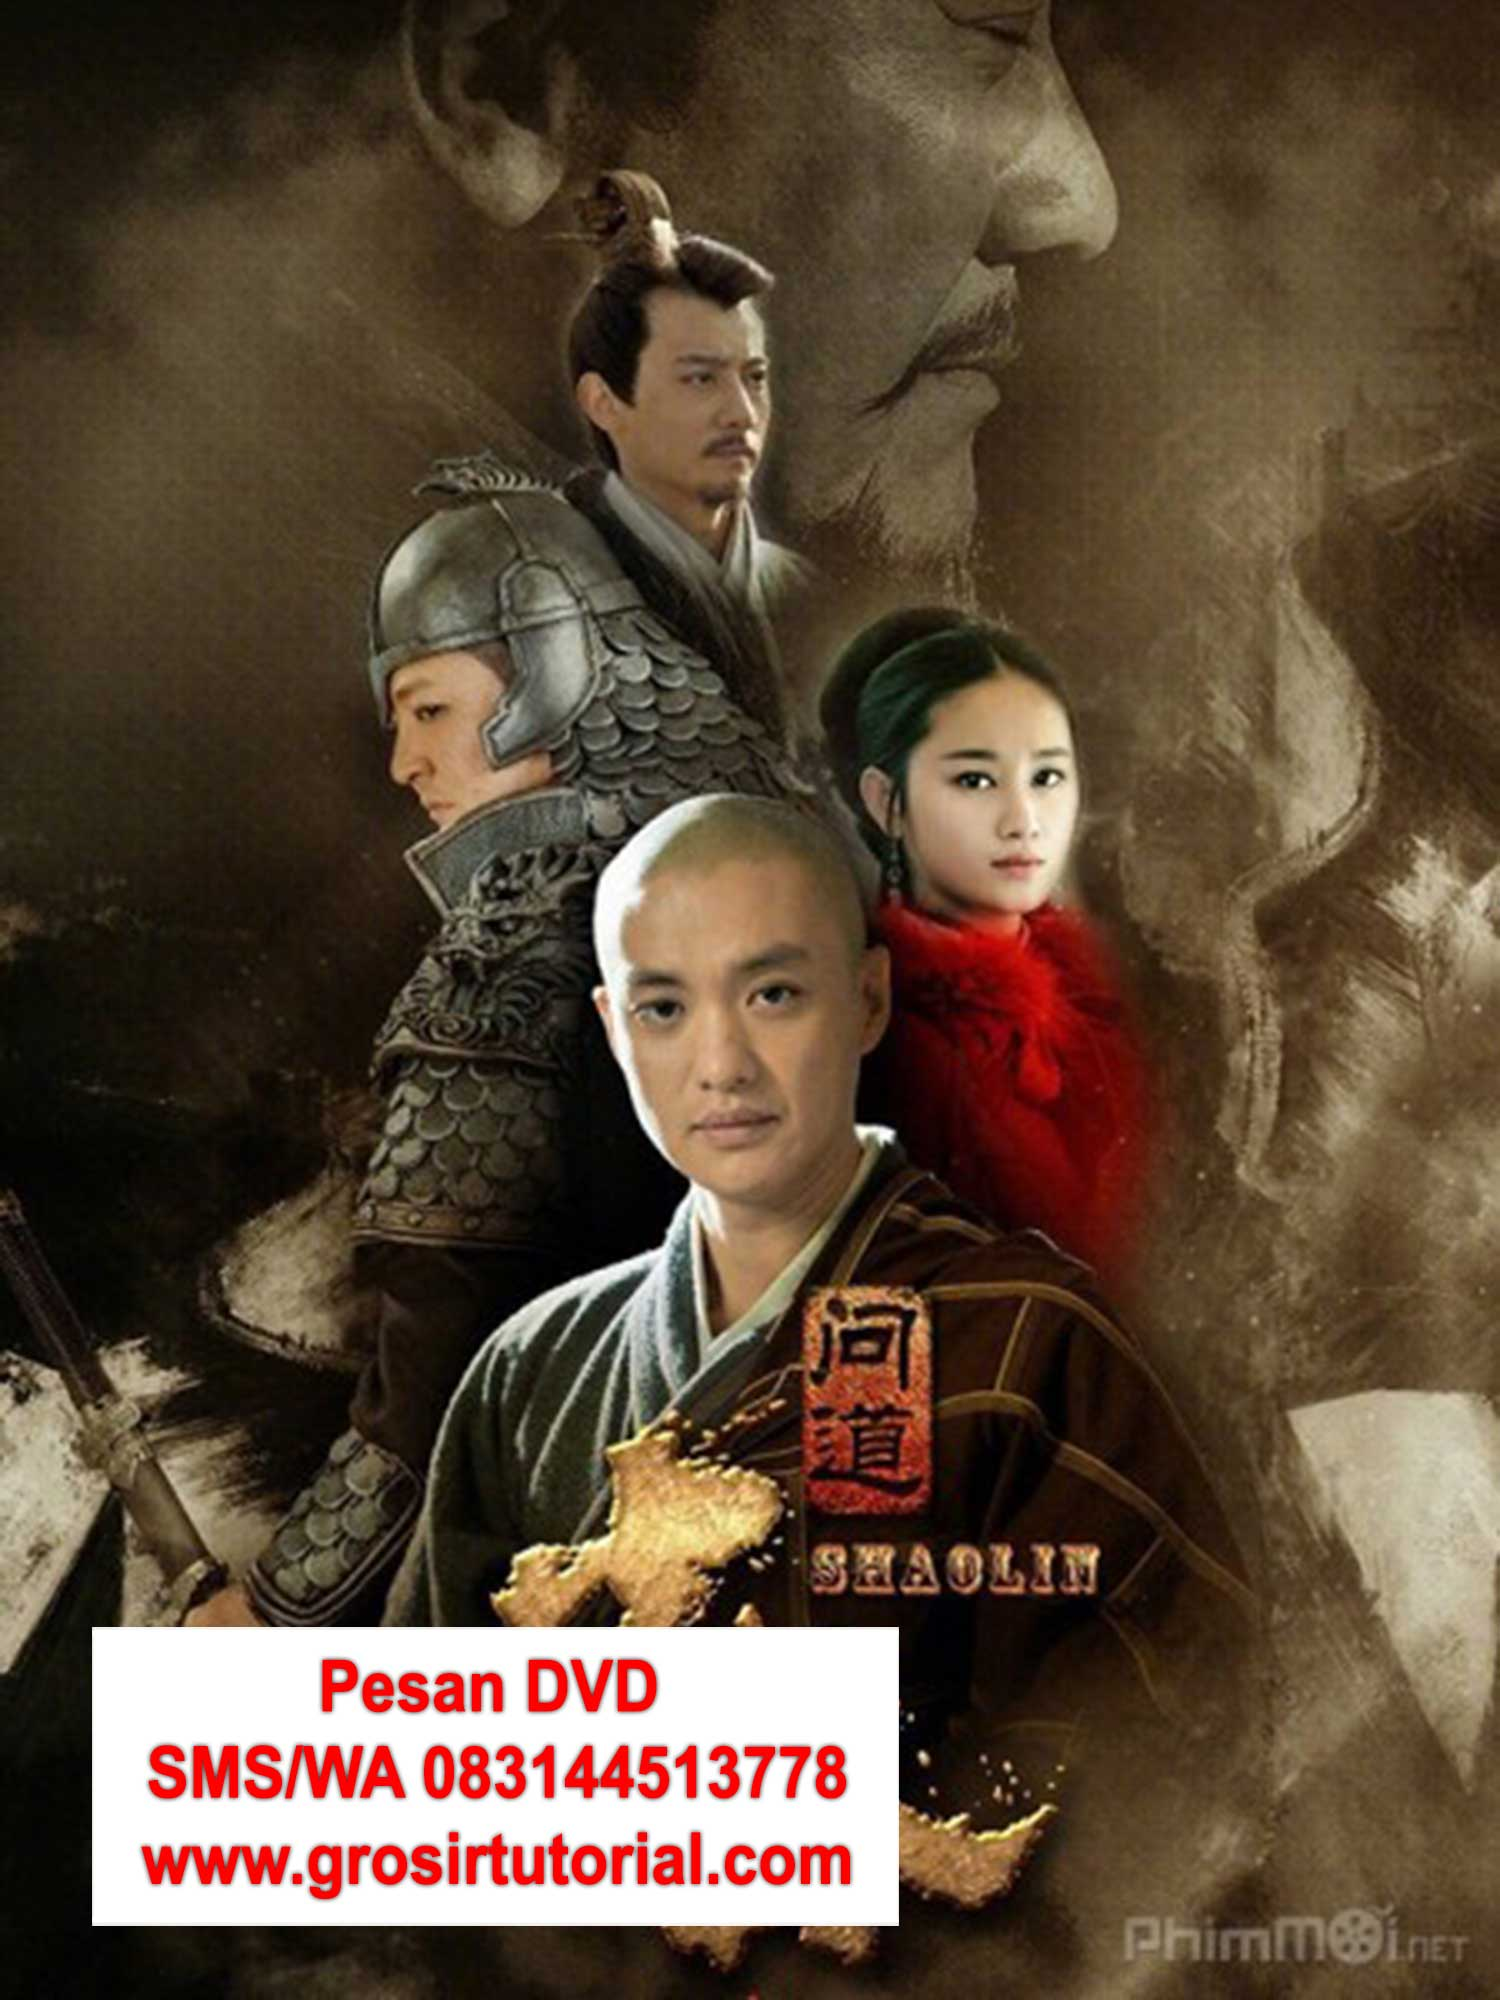 jual-DVD-mandarin-The-Great-Shaolin